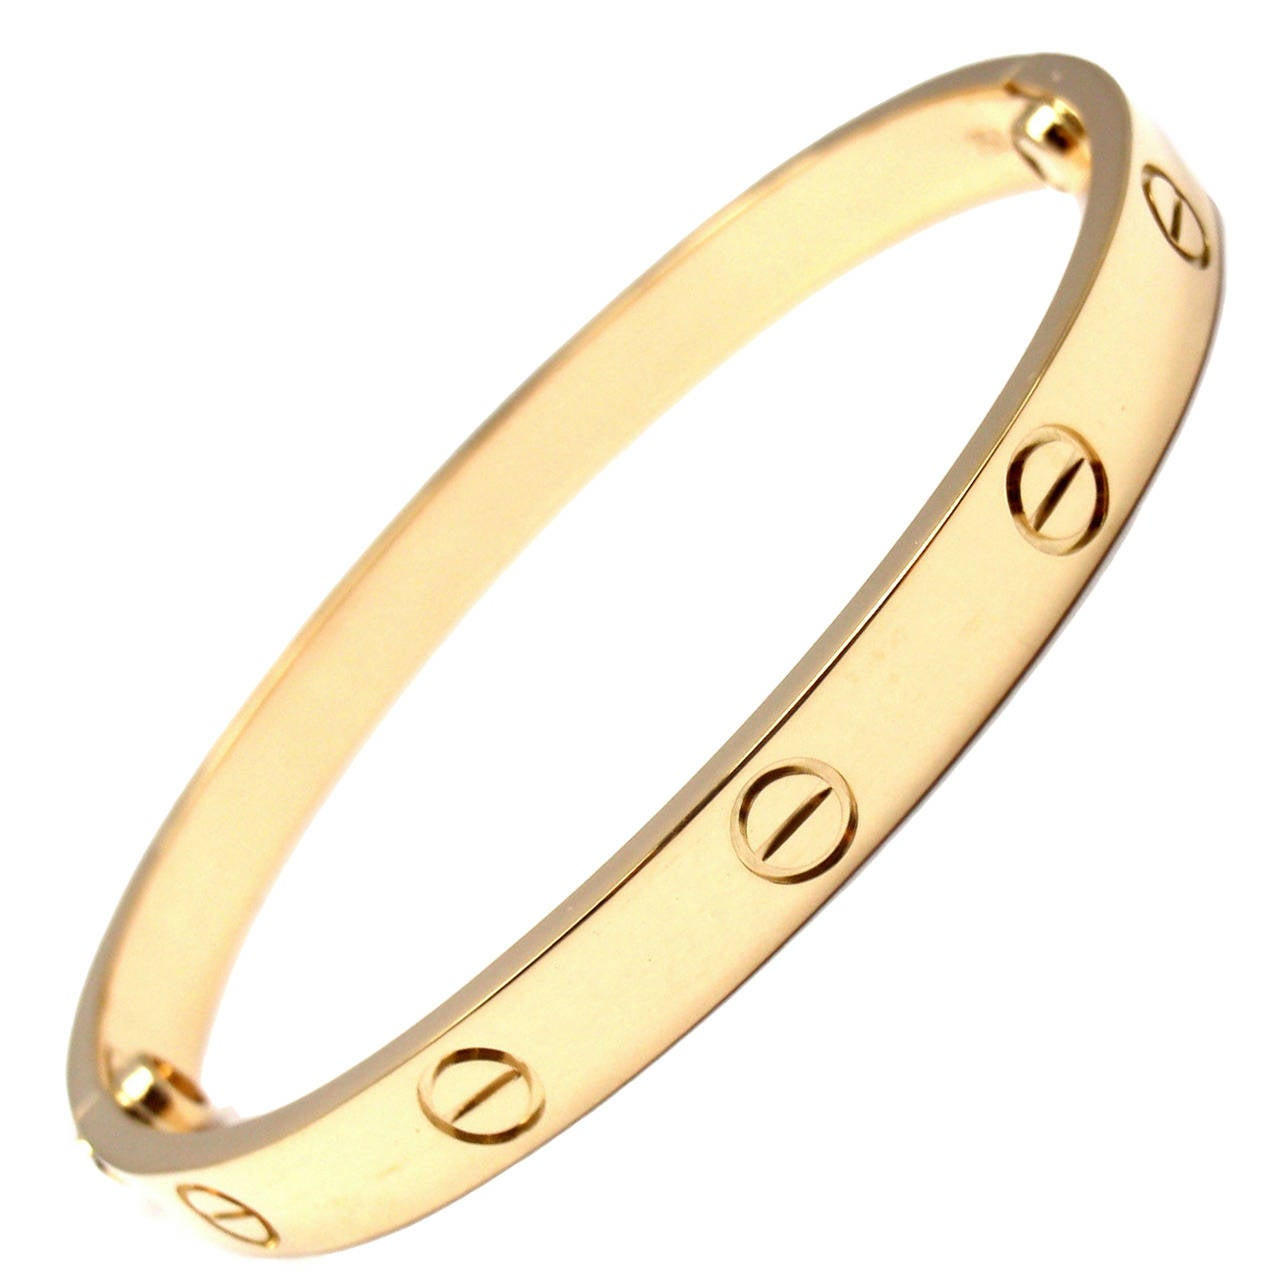 a cartier spot how inside closet fake bracelet the fine love bangles jewellery to